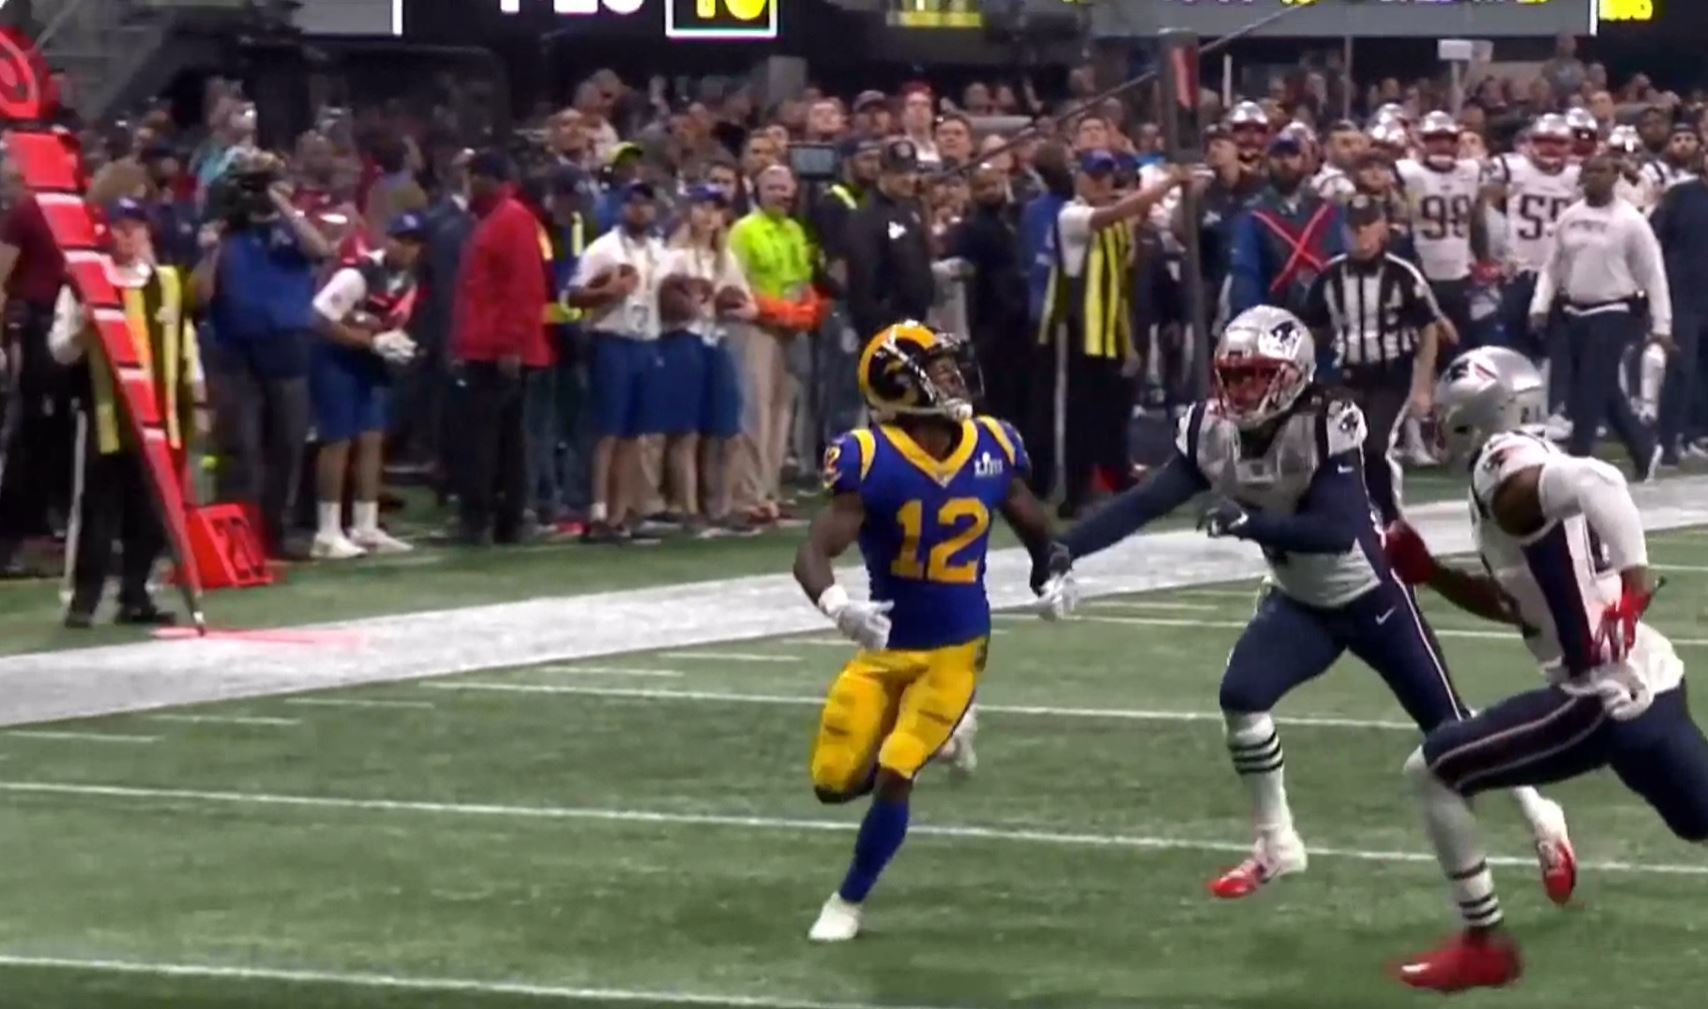 New England Patriots CB Stephon Gilmore defends Los Angeles Rams WR Brandin Cooks in Super Bowl LIII, Feb. 3, 2019.